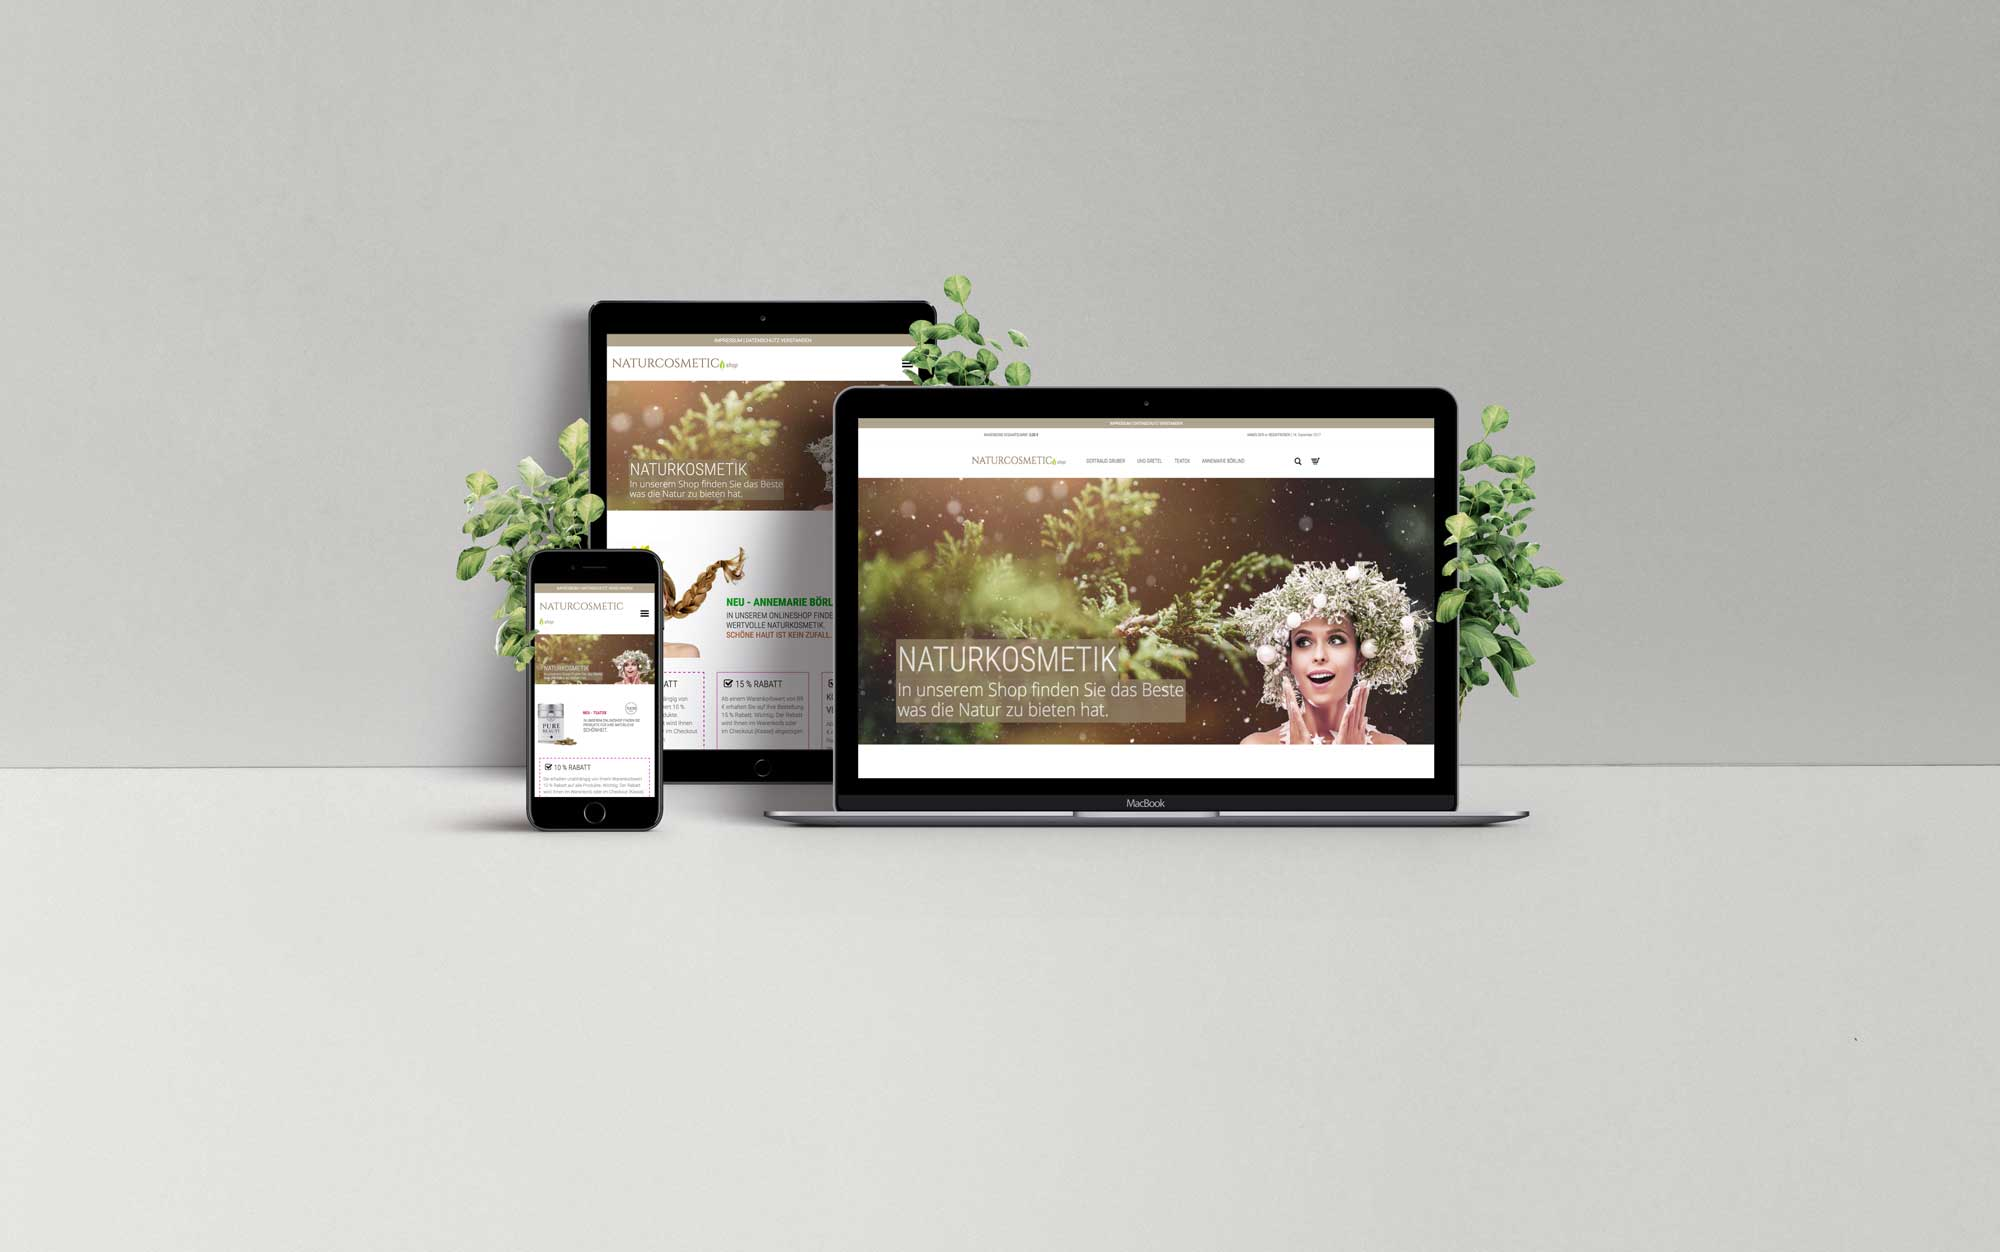 Naturkosmetik Onlineshop - Webdesign München Referenz multi devices